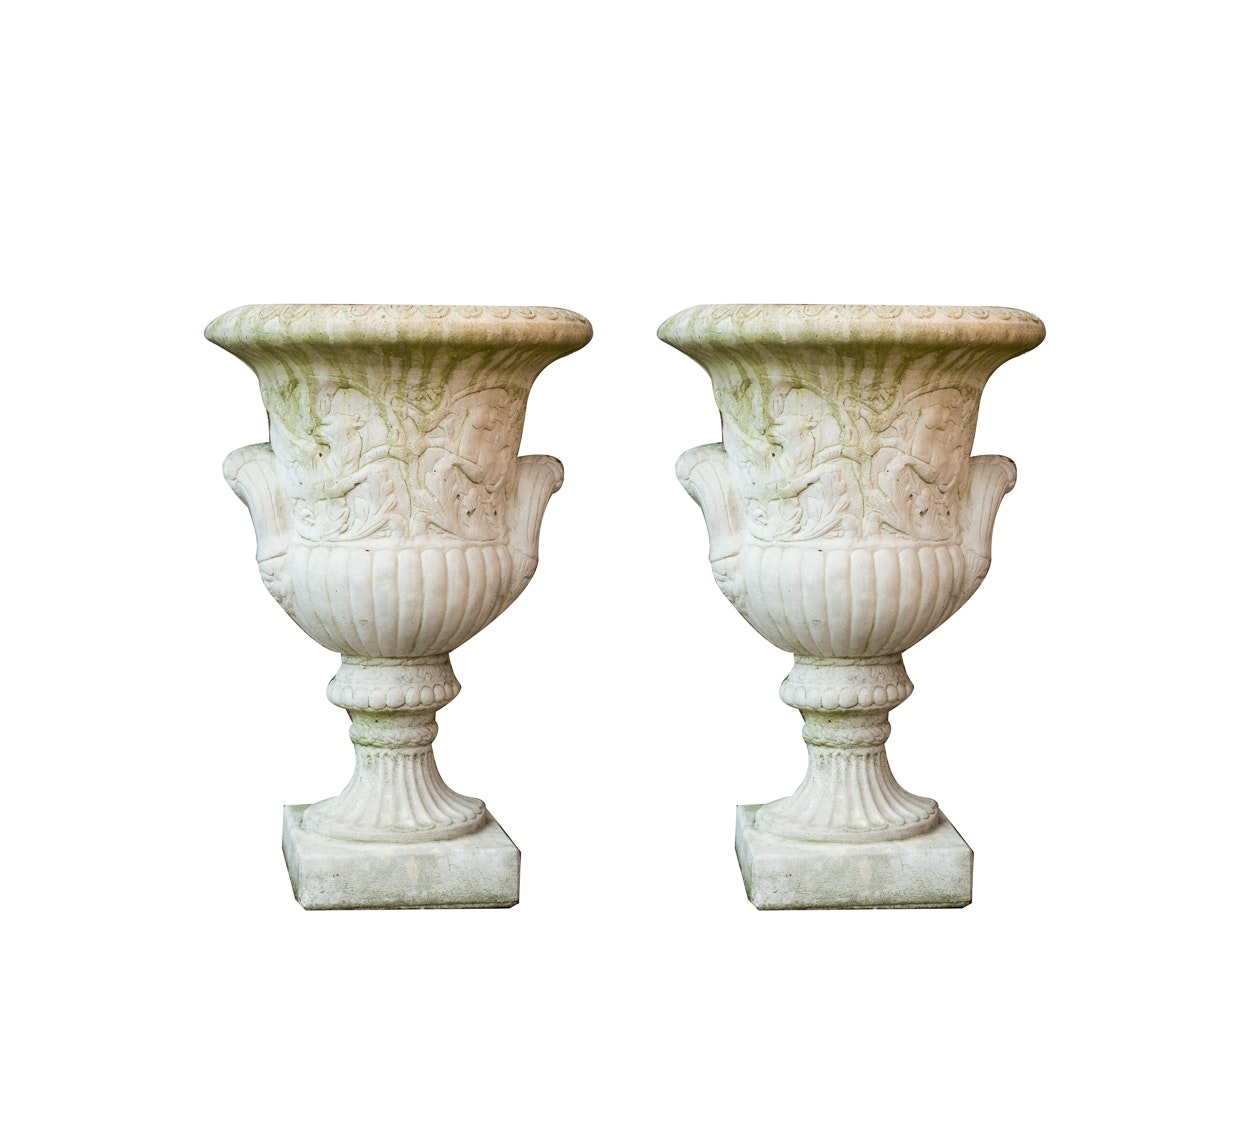 Pair of Neoclassical Concrete Planters